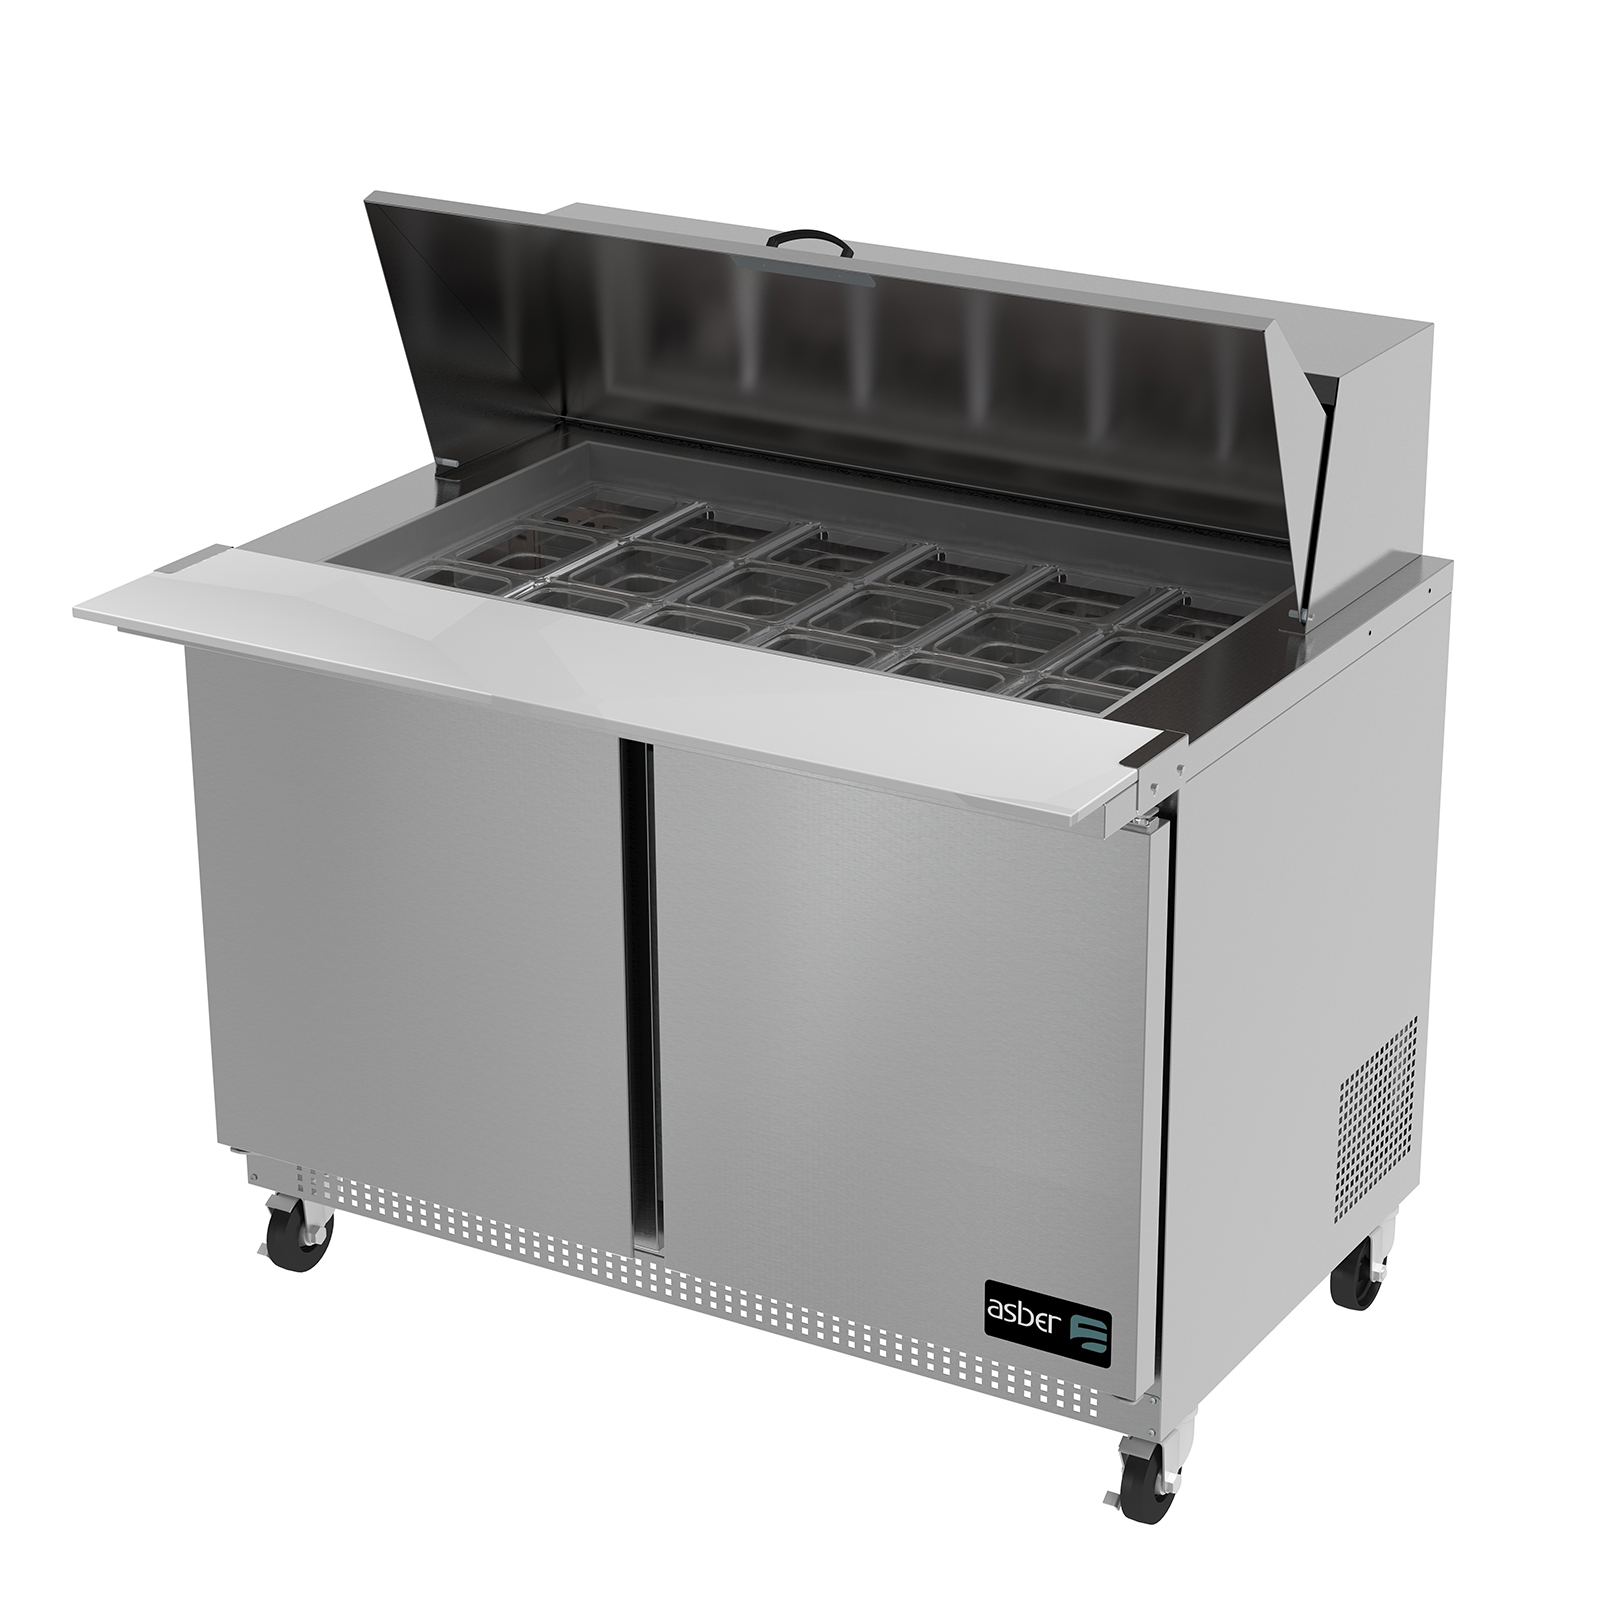 APTM-48-18 Asber refrigerated counter, mega top sandwich / salad unit